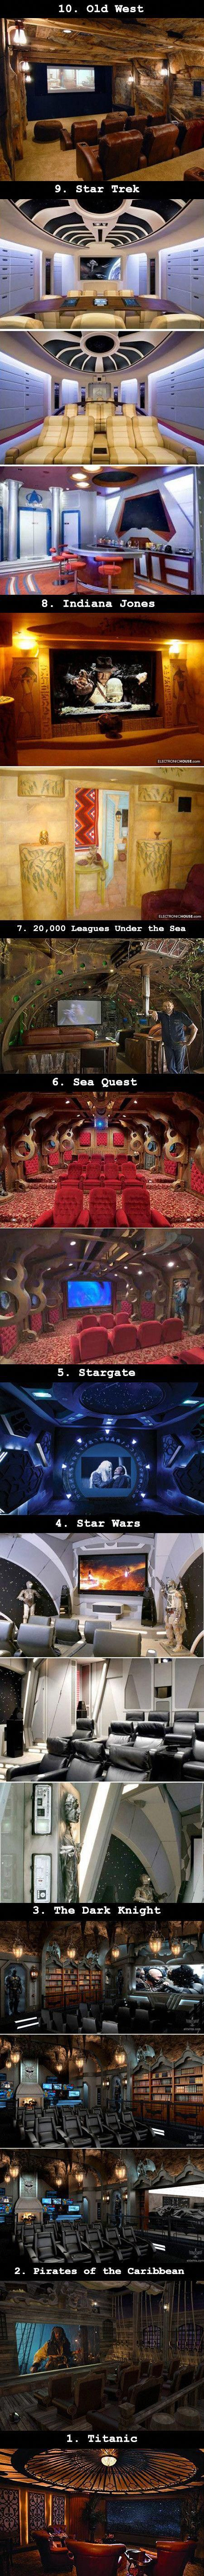 mind blowing home theaters that dreams are made of hometheater theater lighting also best movie rooms images rh pinterest